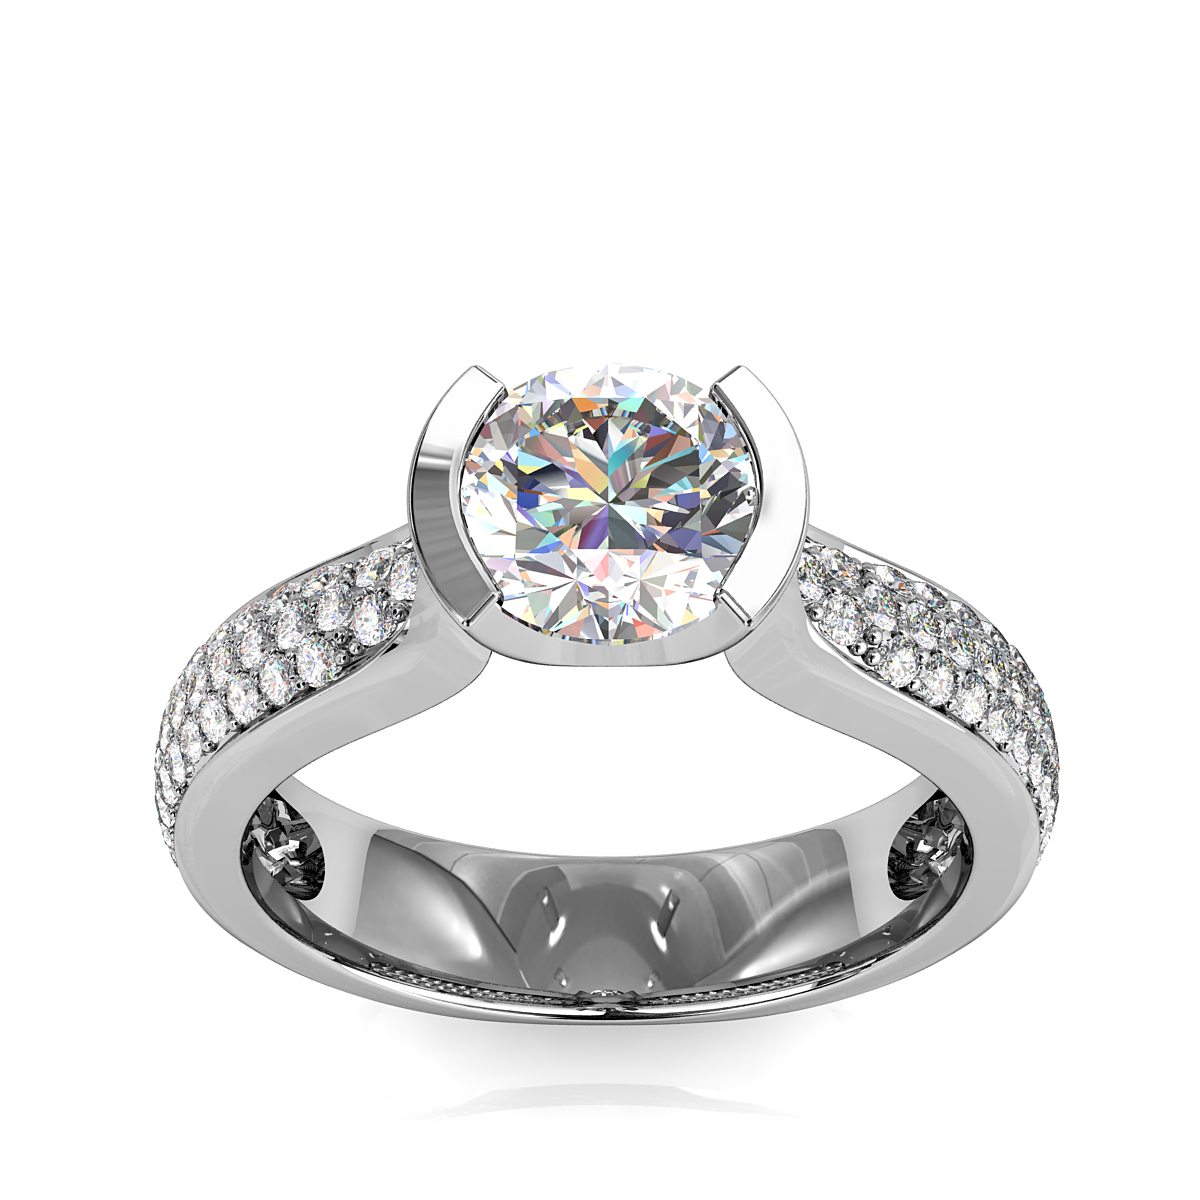 Round Brilliant Cut Diamond Solitaire Engagement Ring, Semi Bezel Tension Set on a Tapered Pave Band.